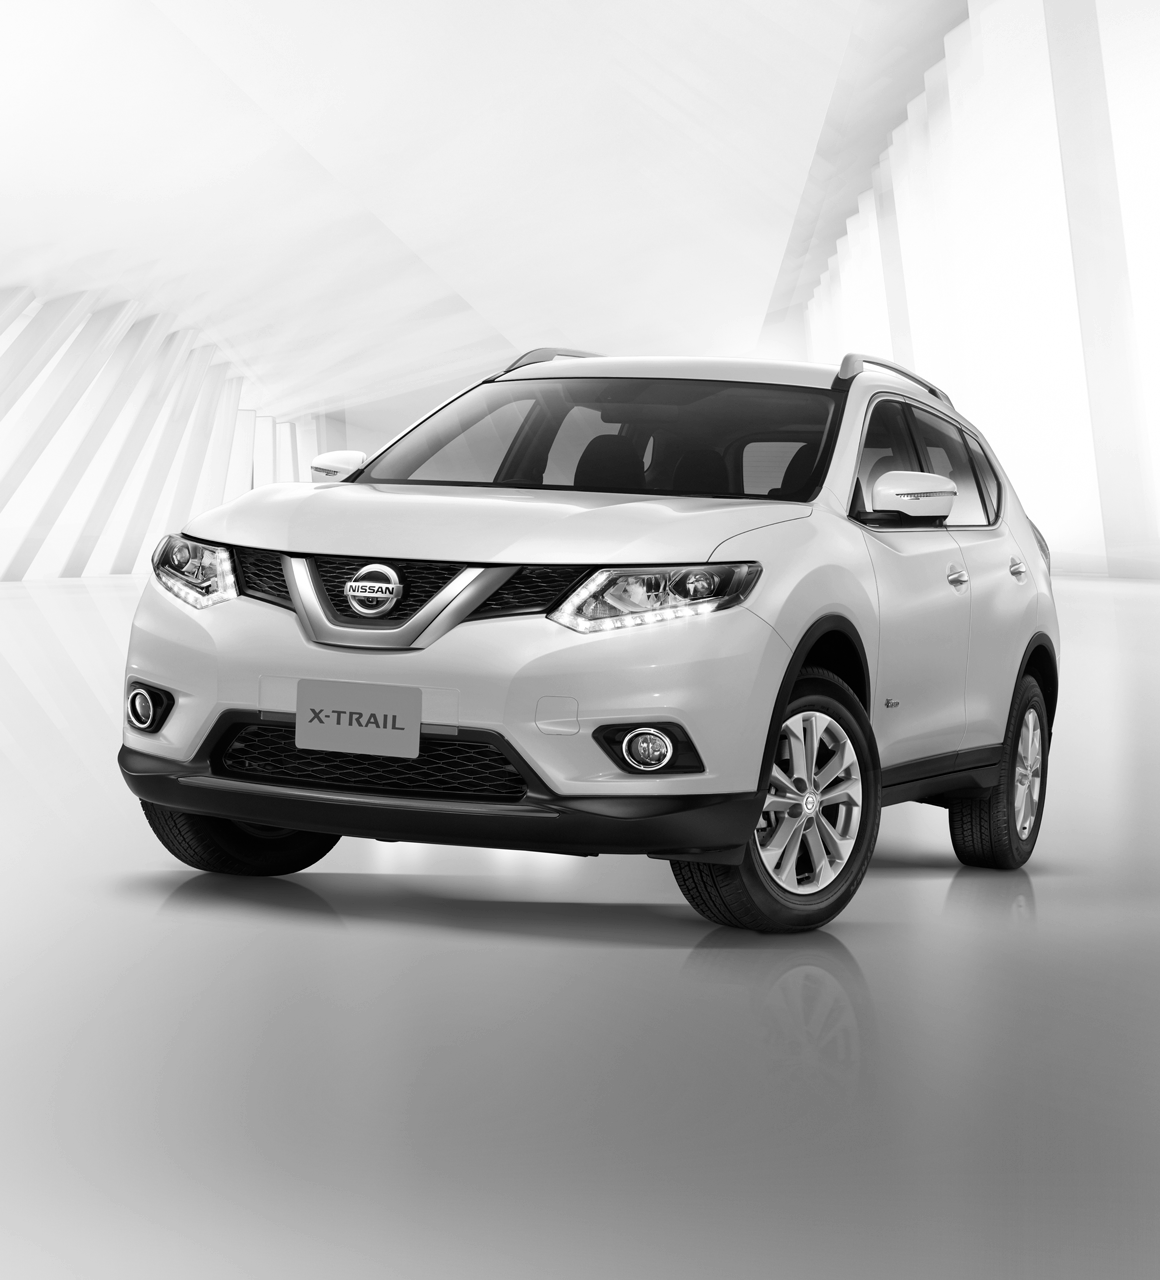 New Nissan X-Trail Hybrid